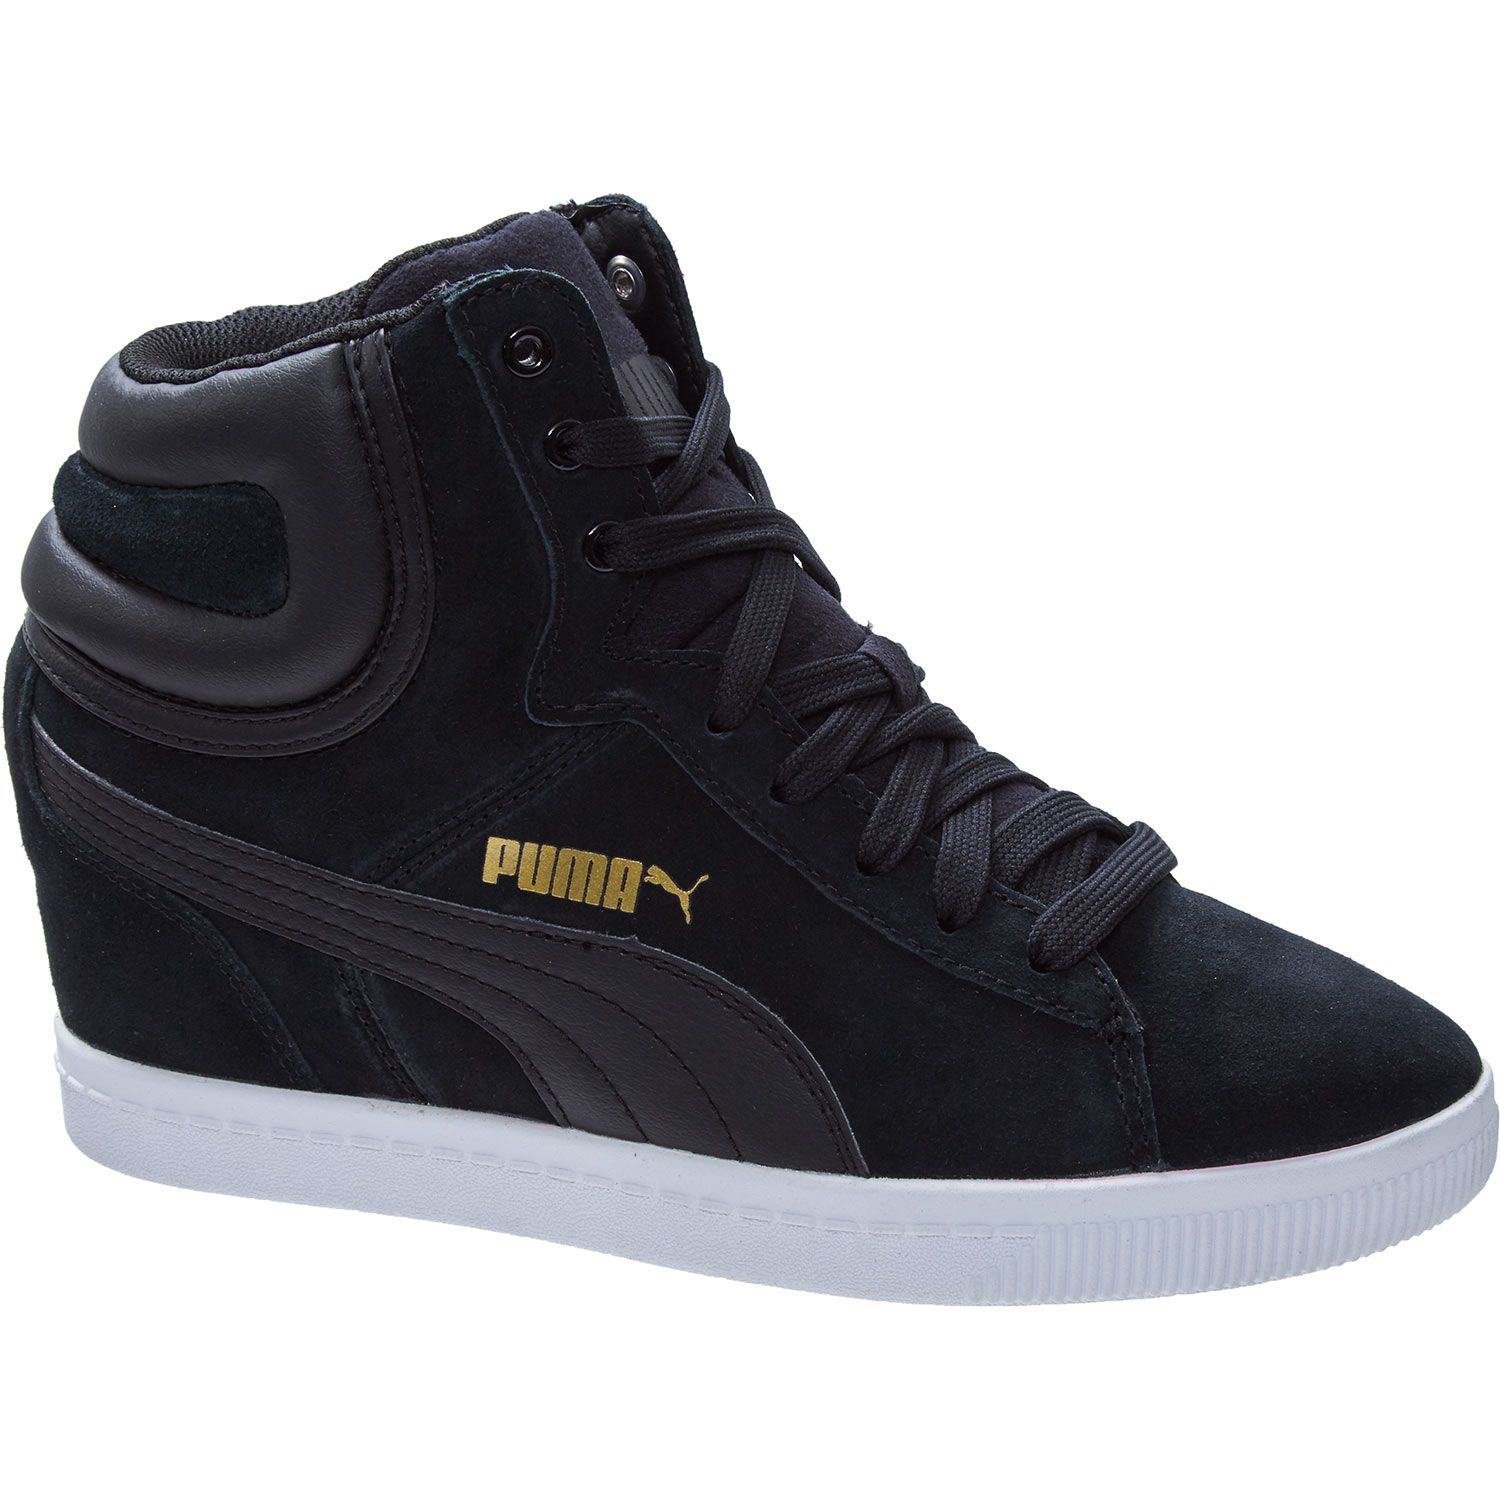 Maxx High Pinterest Wedge Tops Puma Tk Black Shoes XBqZnp